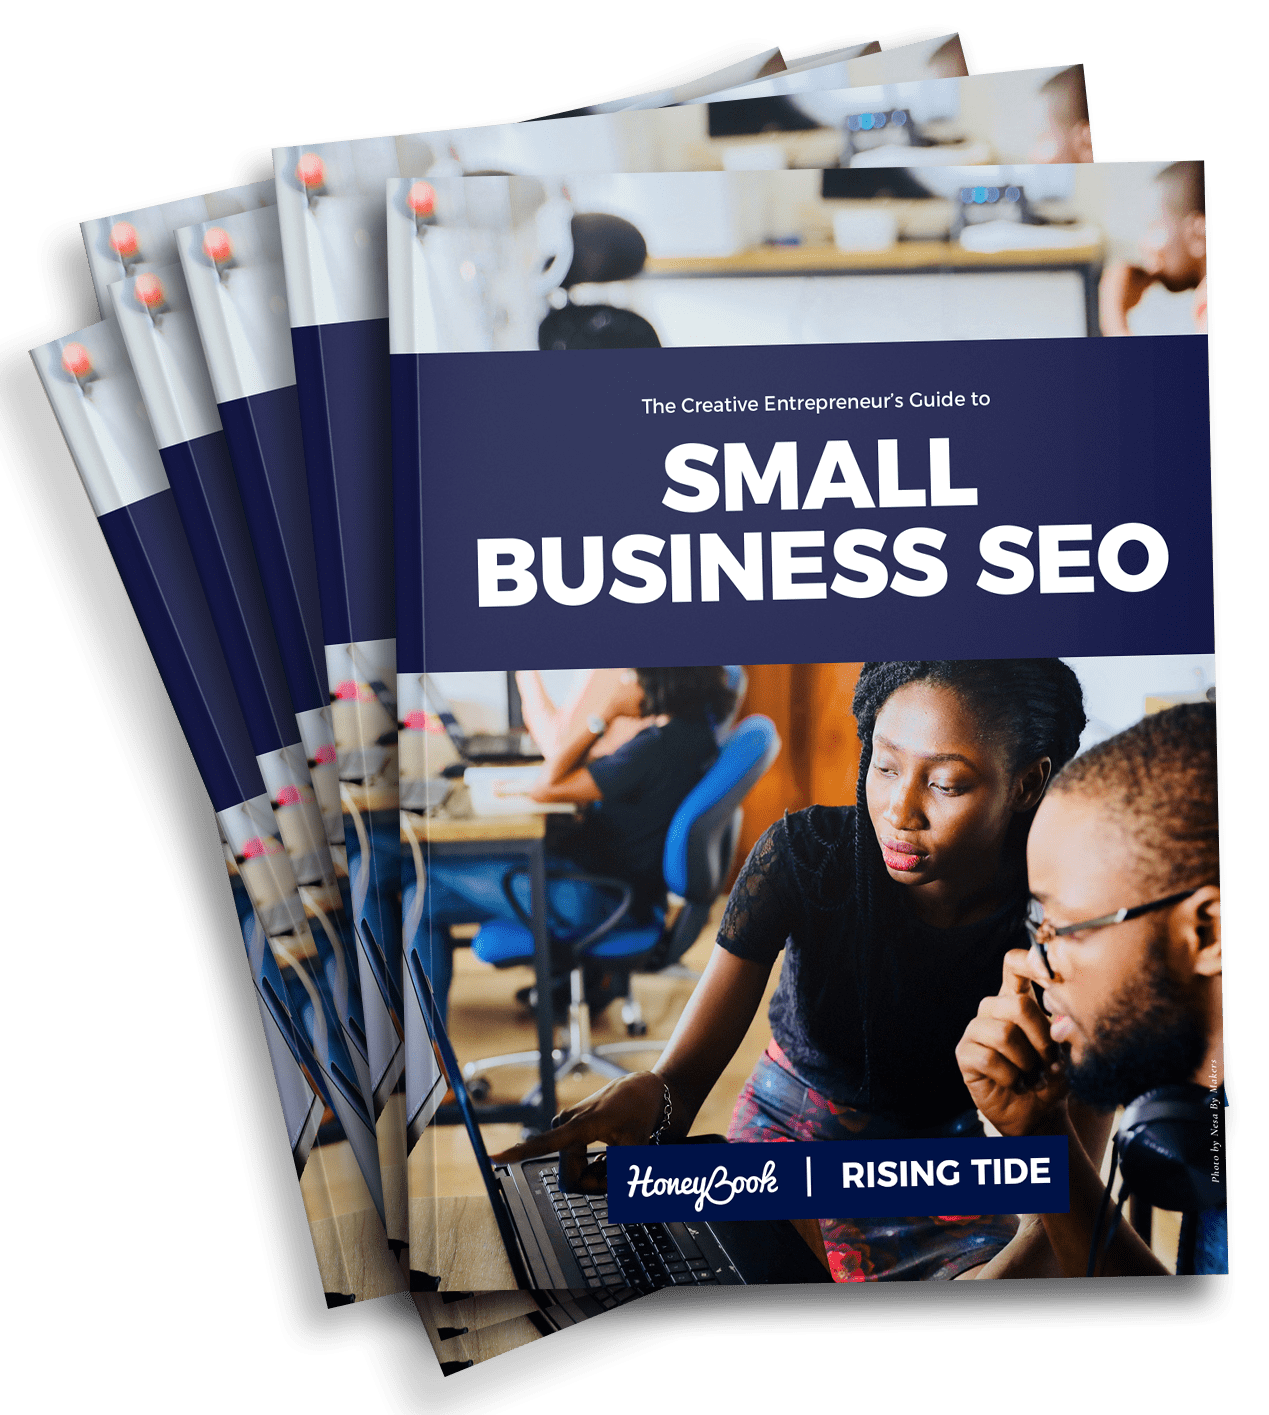 Small Business SEO – The Ultimate Guide